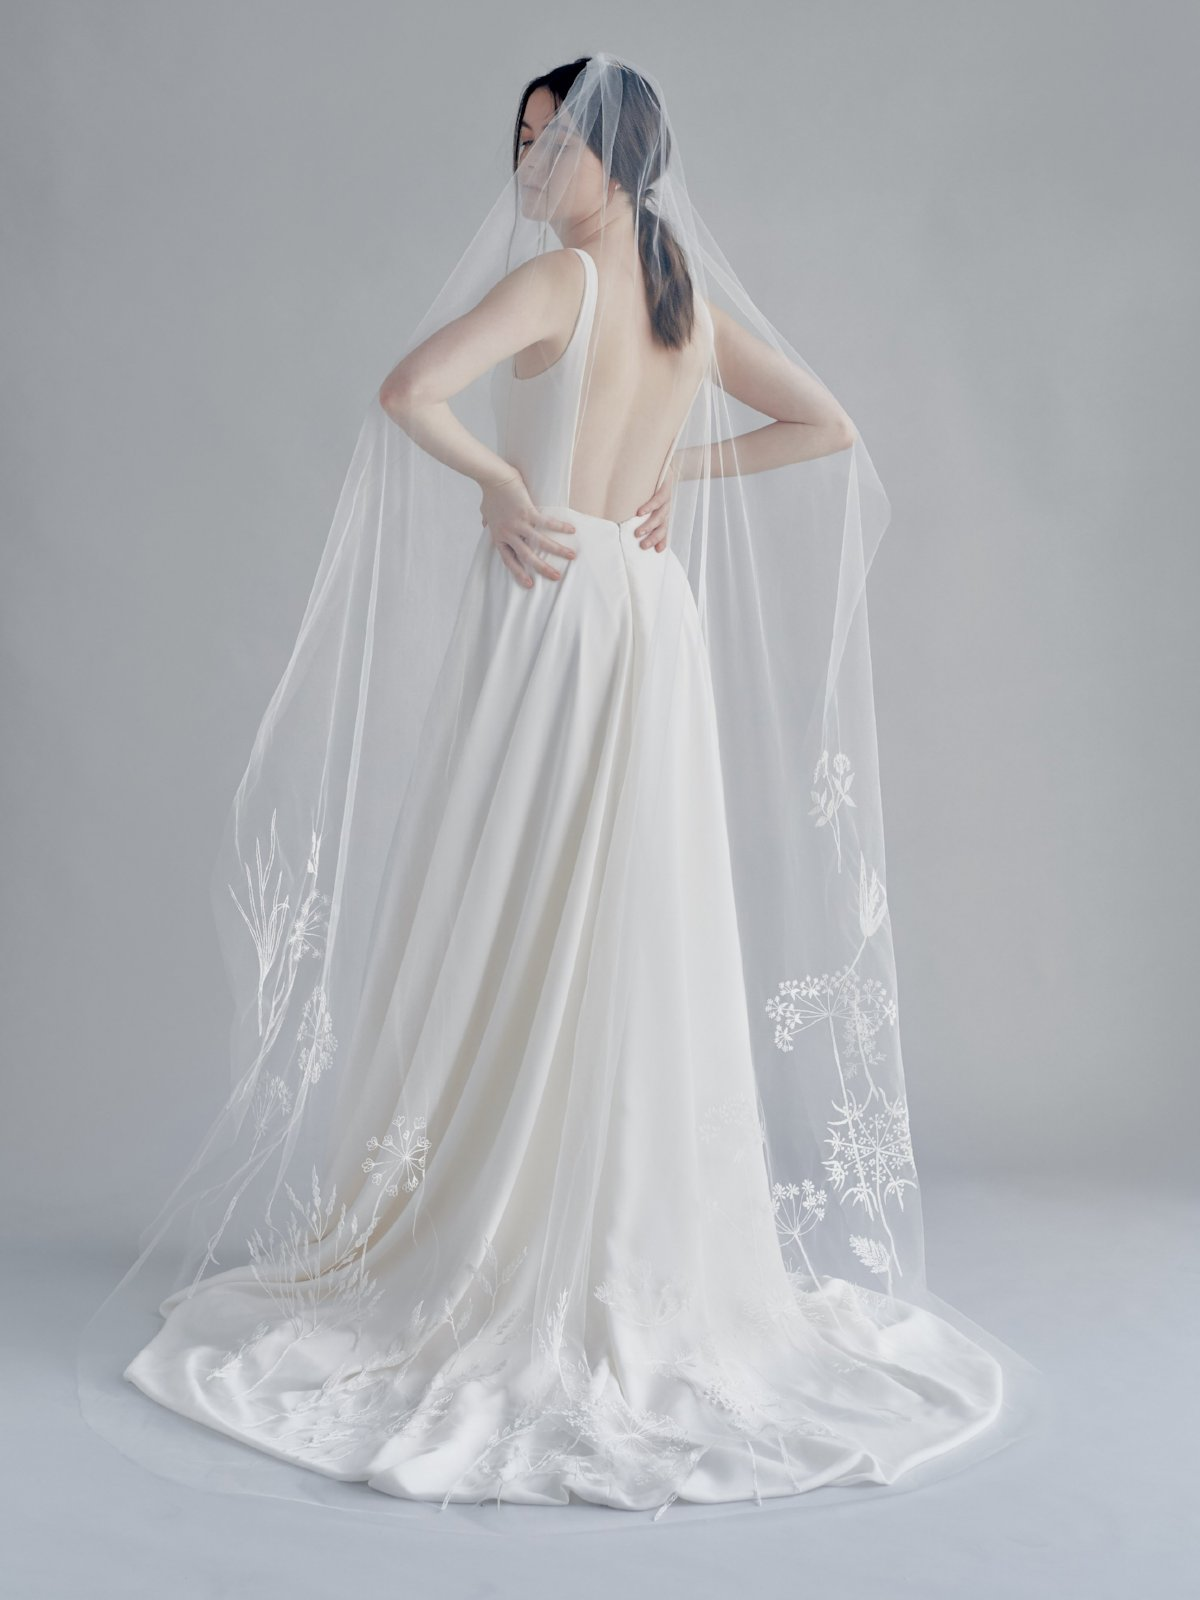 Wildflowers bridal veil olivia the wolf bhldn embroidered